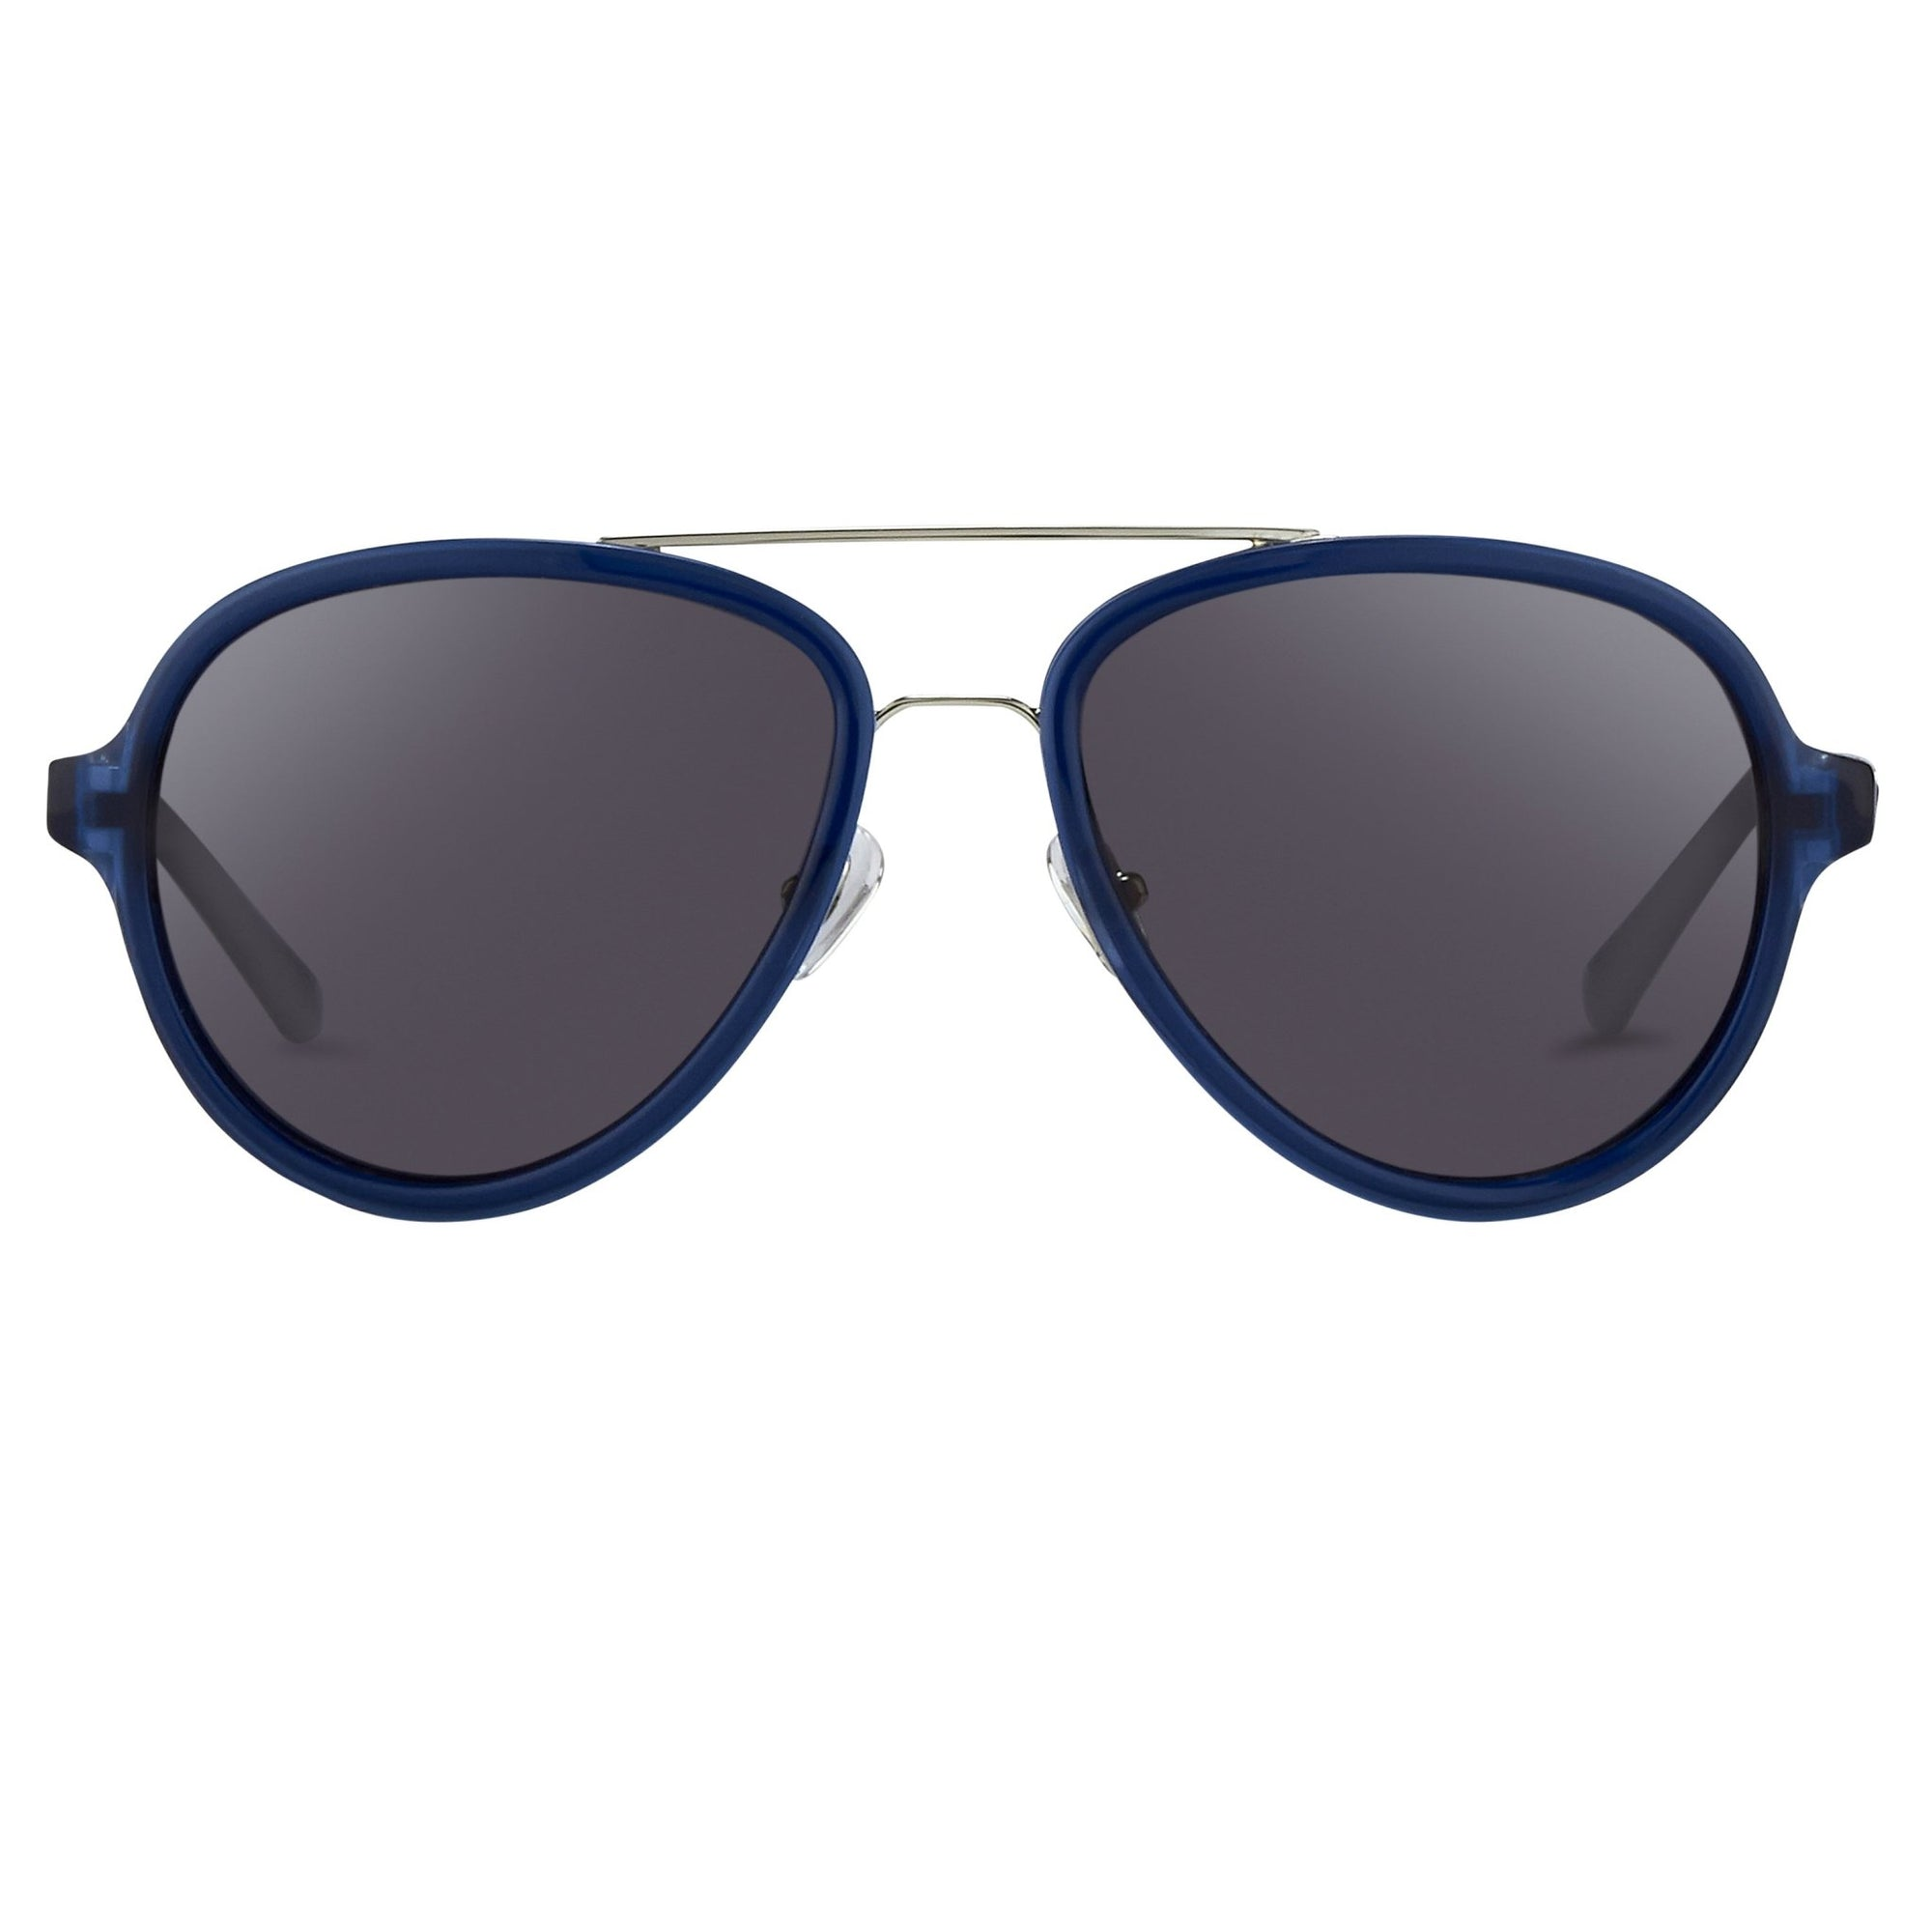 Phillip Lim Sunglasses Deep Blue Silver and Green Lenses Category 3 - PL16C29SUN - Watches & Crystals